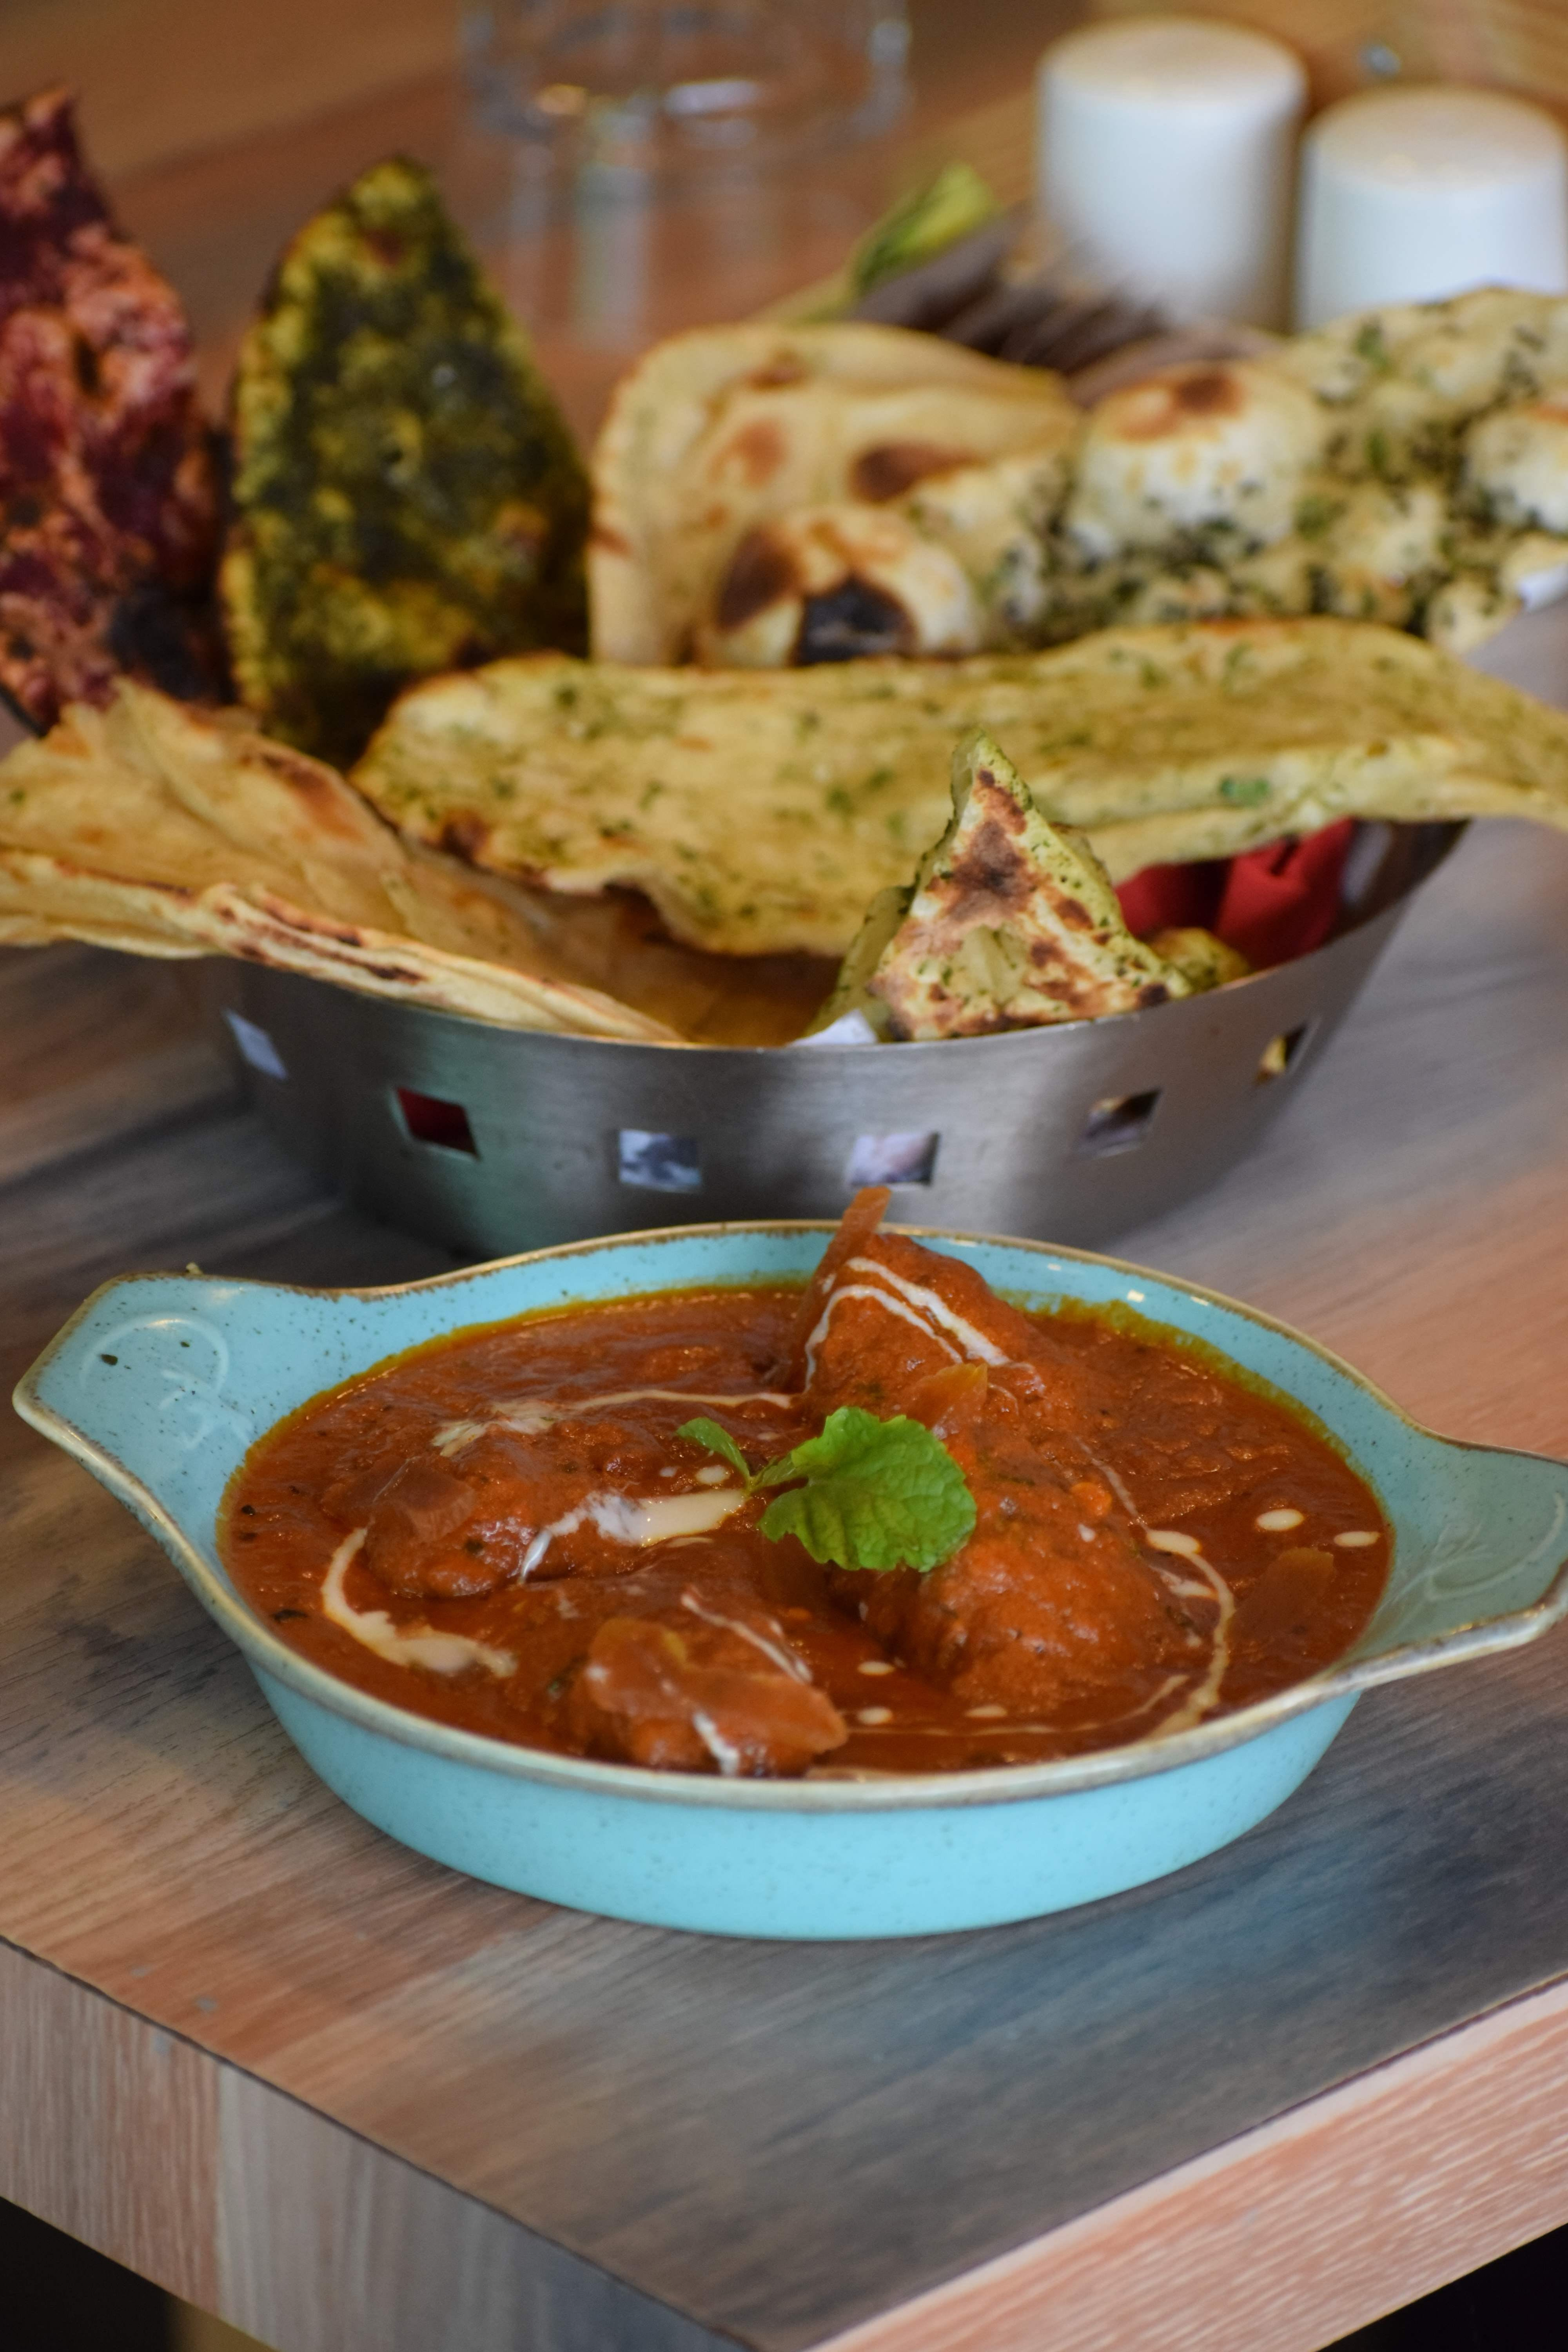 Dish,Food,Cuisine,Ingredient,Tortilla chip,Produce,Naan,Indian cuisine,Curry,Gravy